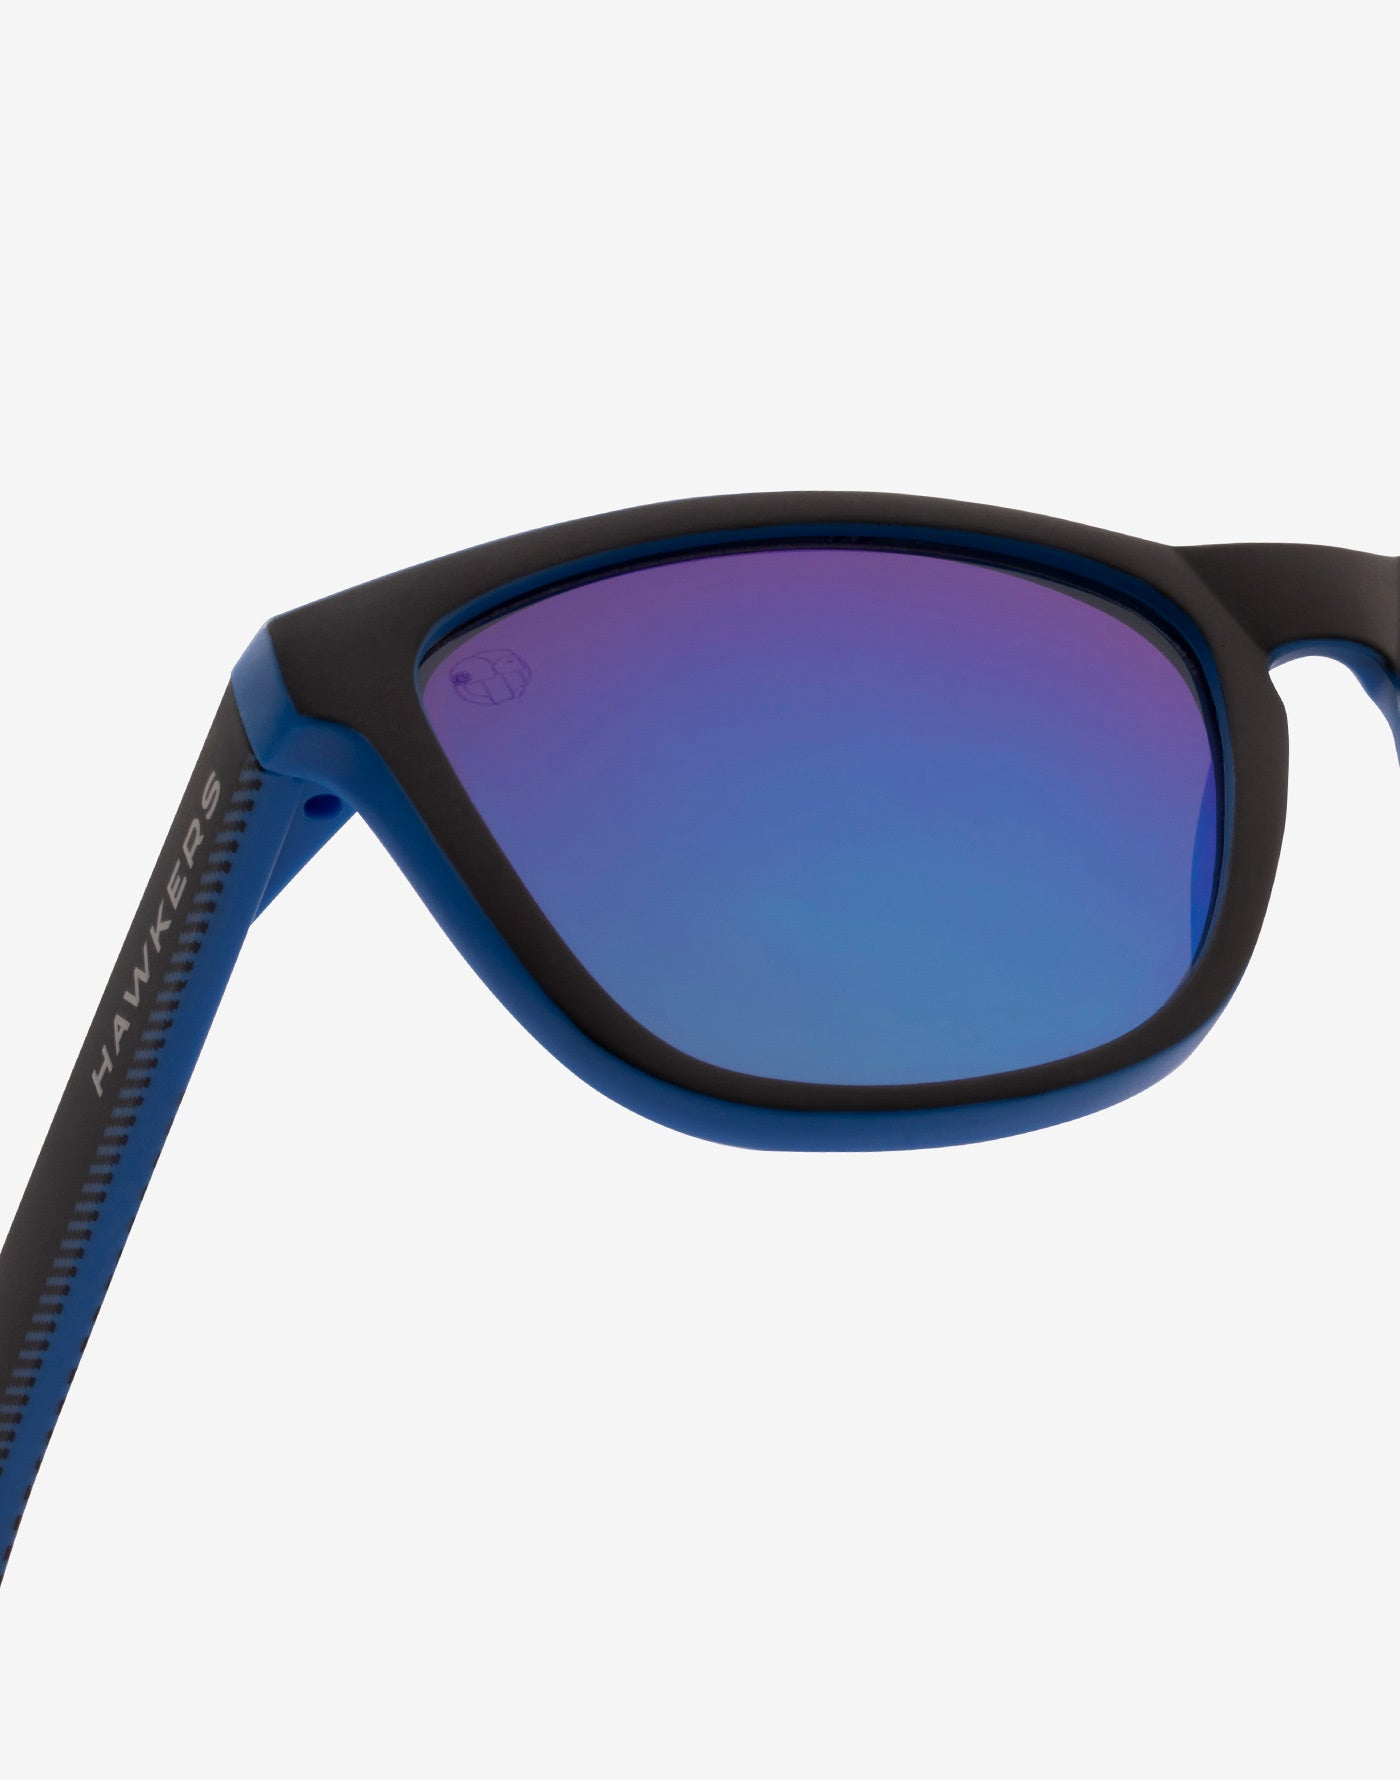 Hawkers x Forocoches · Carbon Blue Sky One